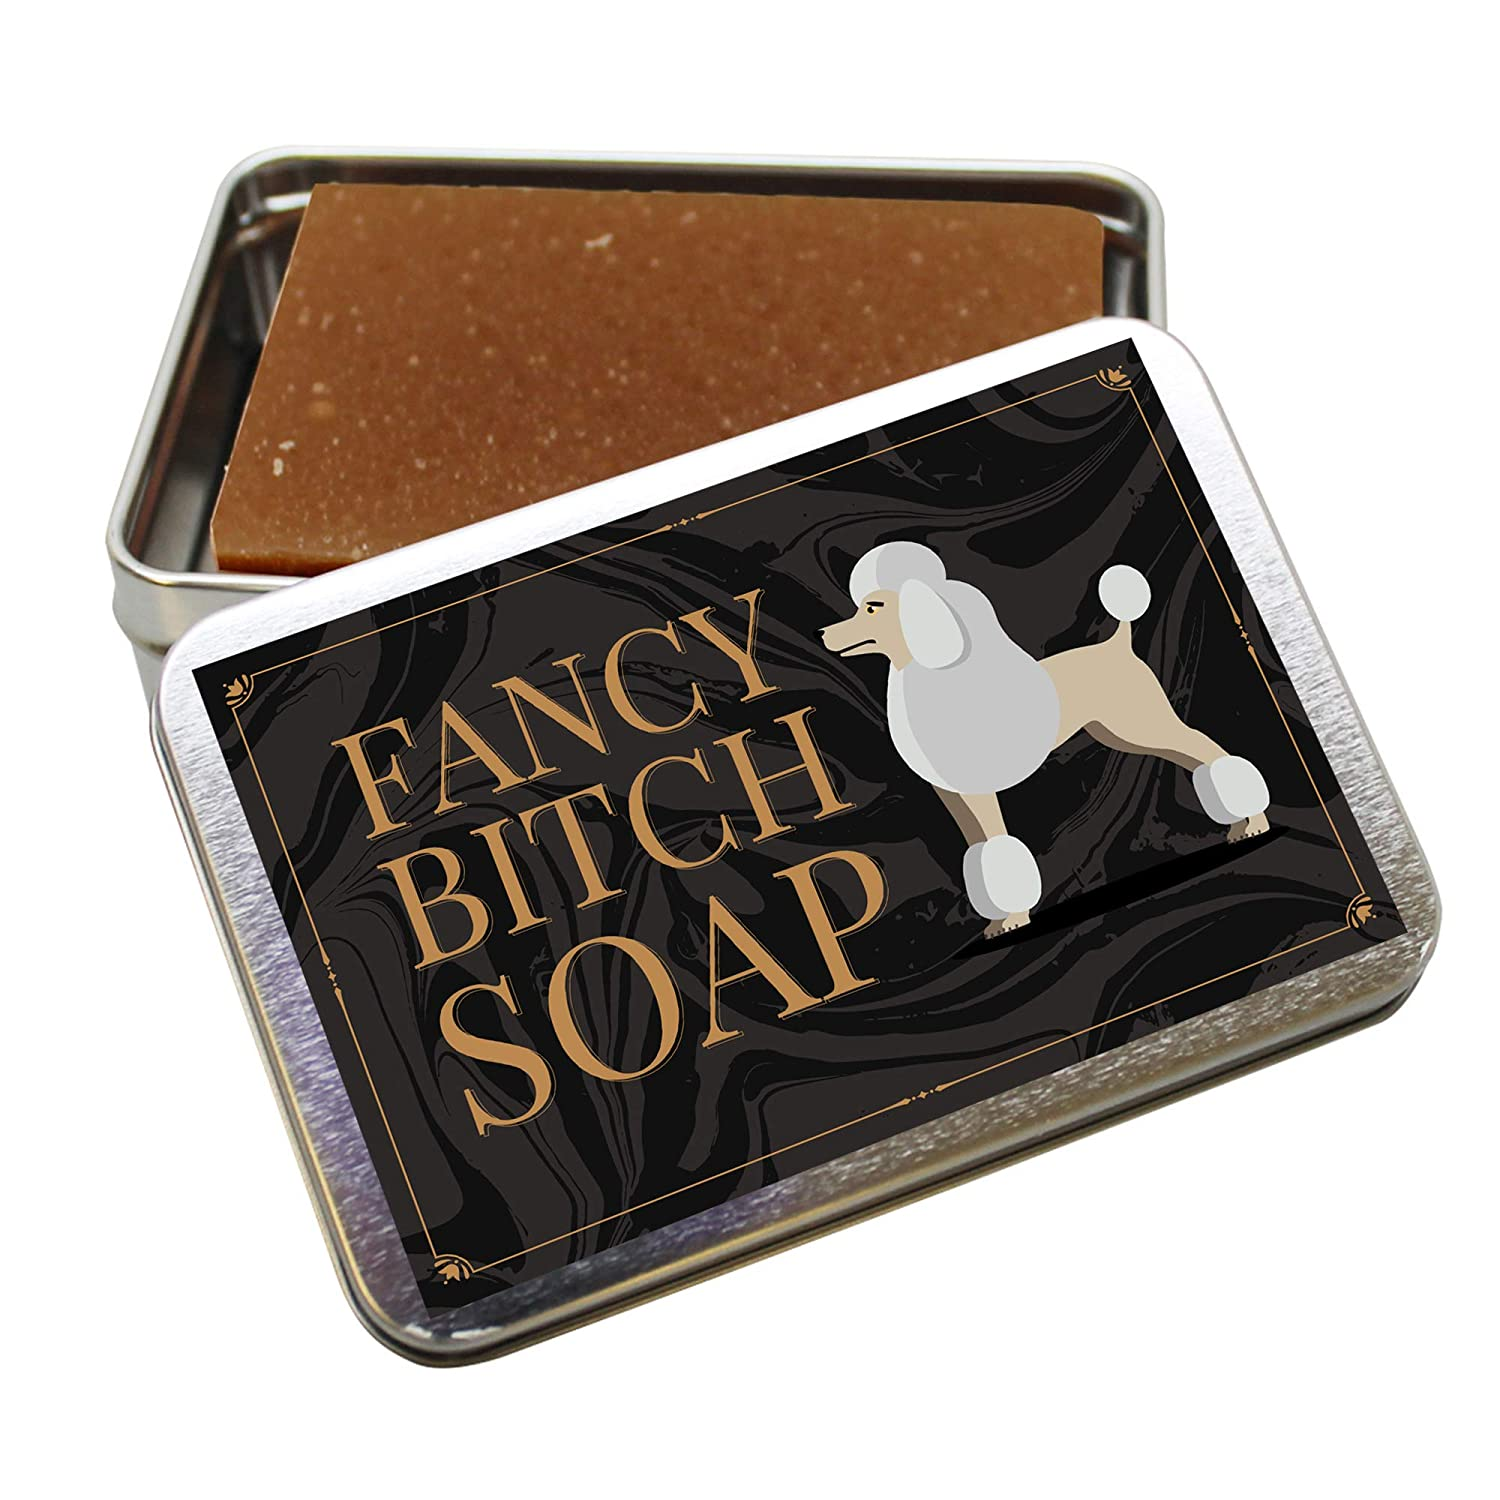 Fancy Btch Soap - Pretty Poodle Tin - Novelty Bath Soap for Women - Chocolate Soap, Handcrafted, Made in the USA